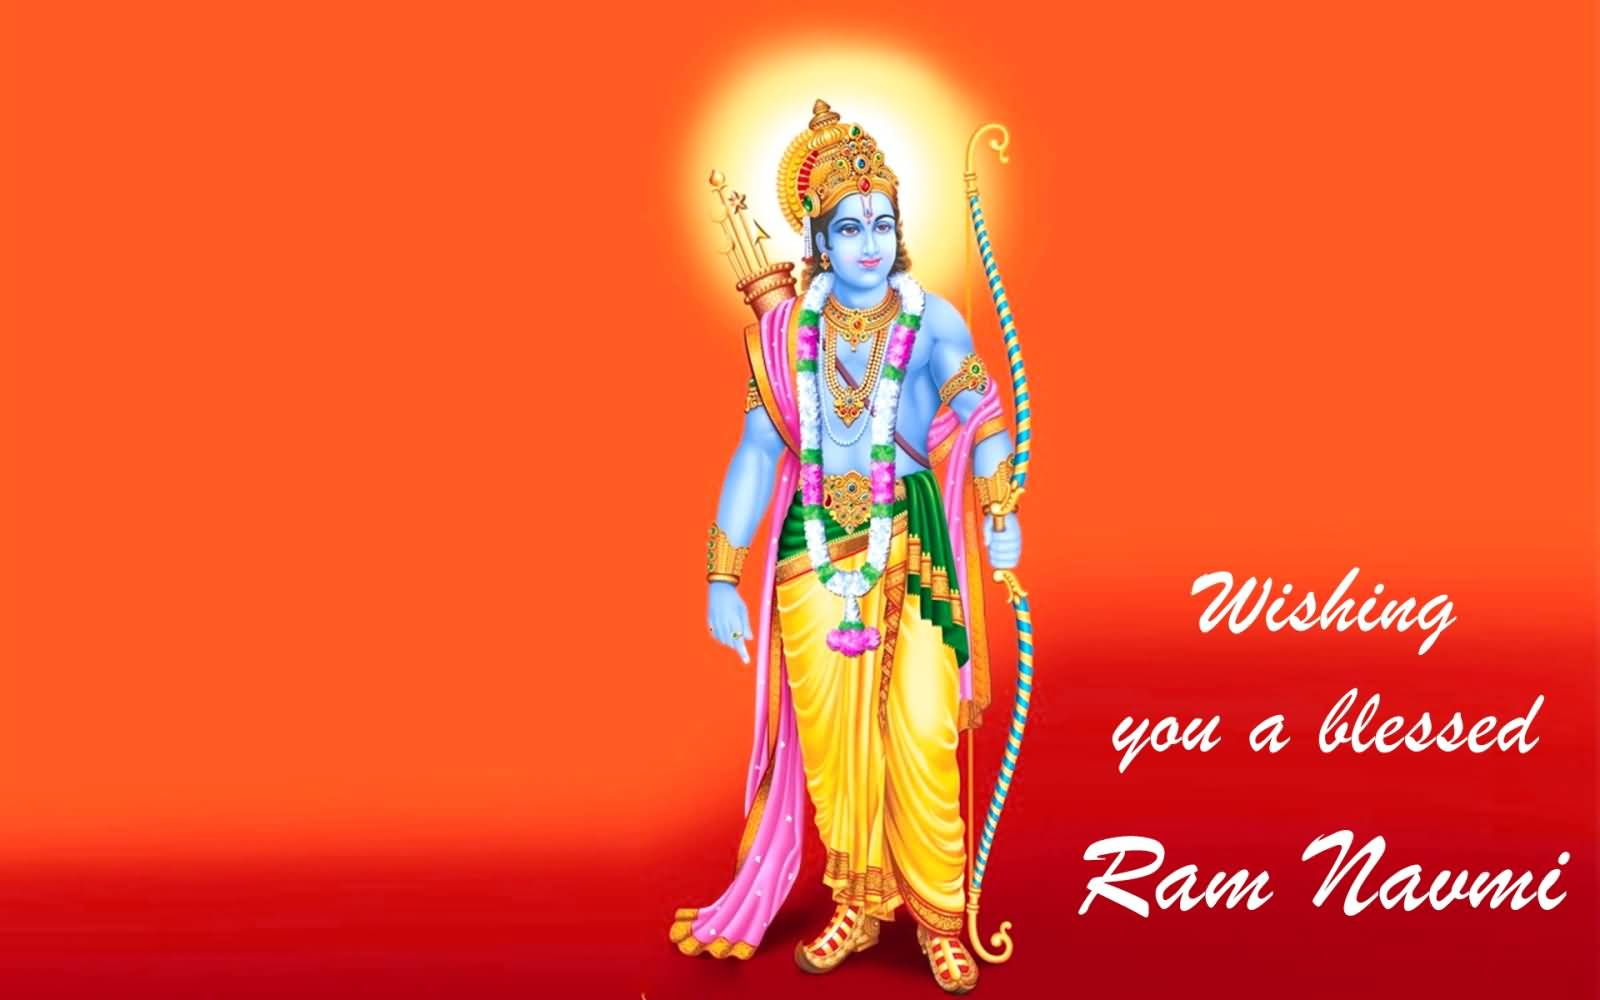 50 Beautiful Ram Navami 2017 Wish Pictures And Images